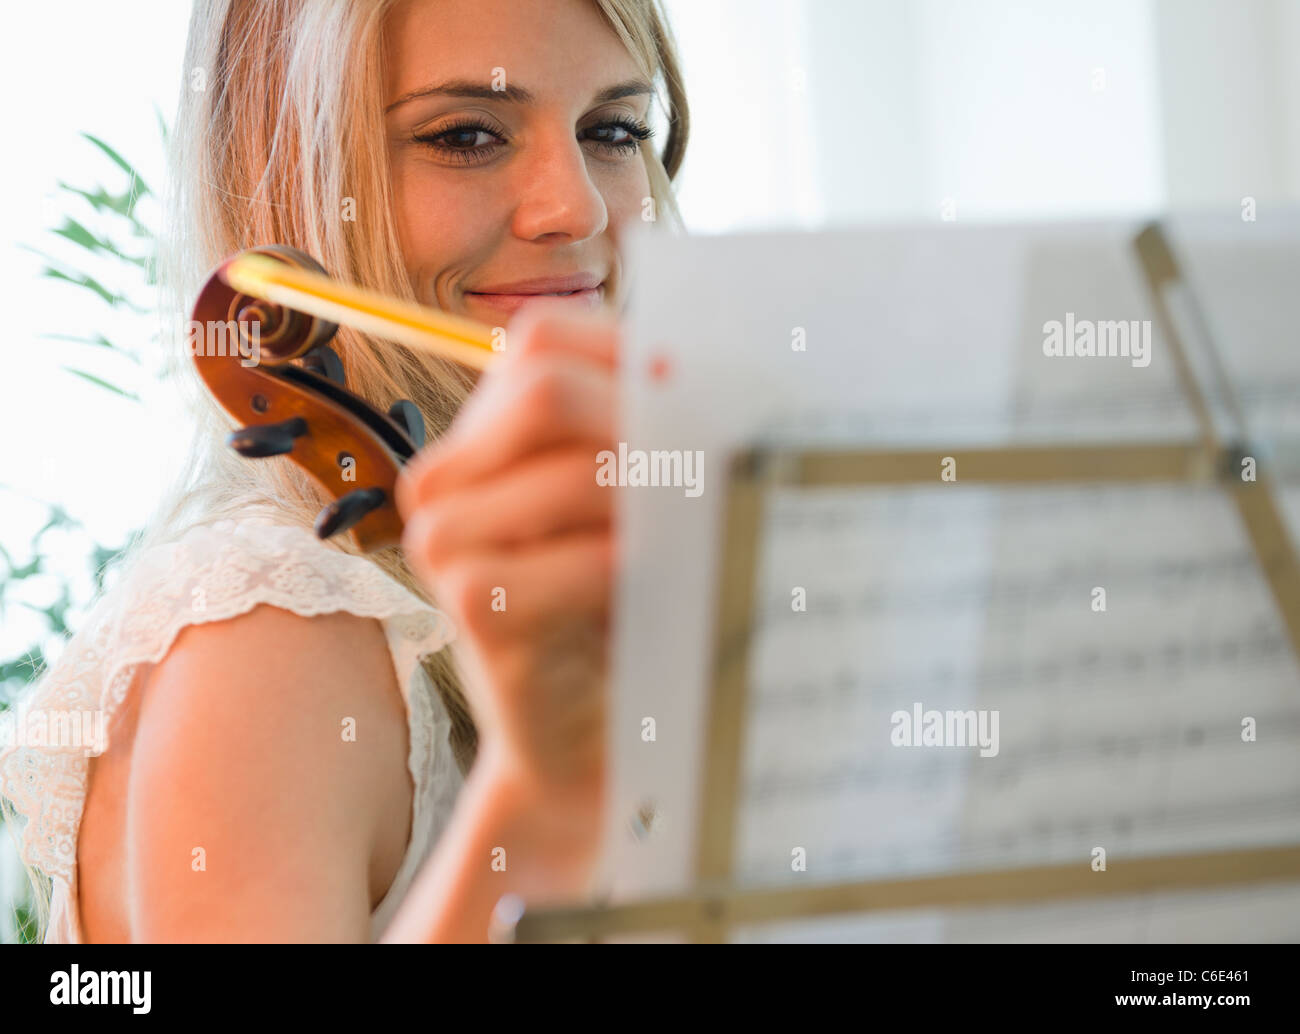 USA, New Jersey, Jersey City, femme de composer la musique Photo Stock